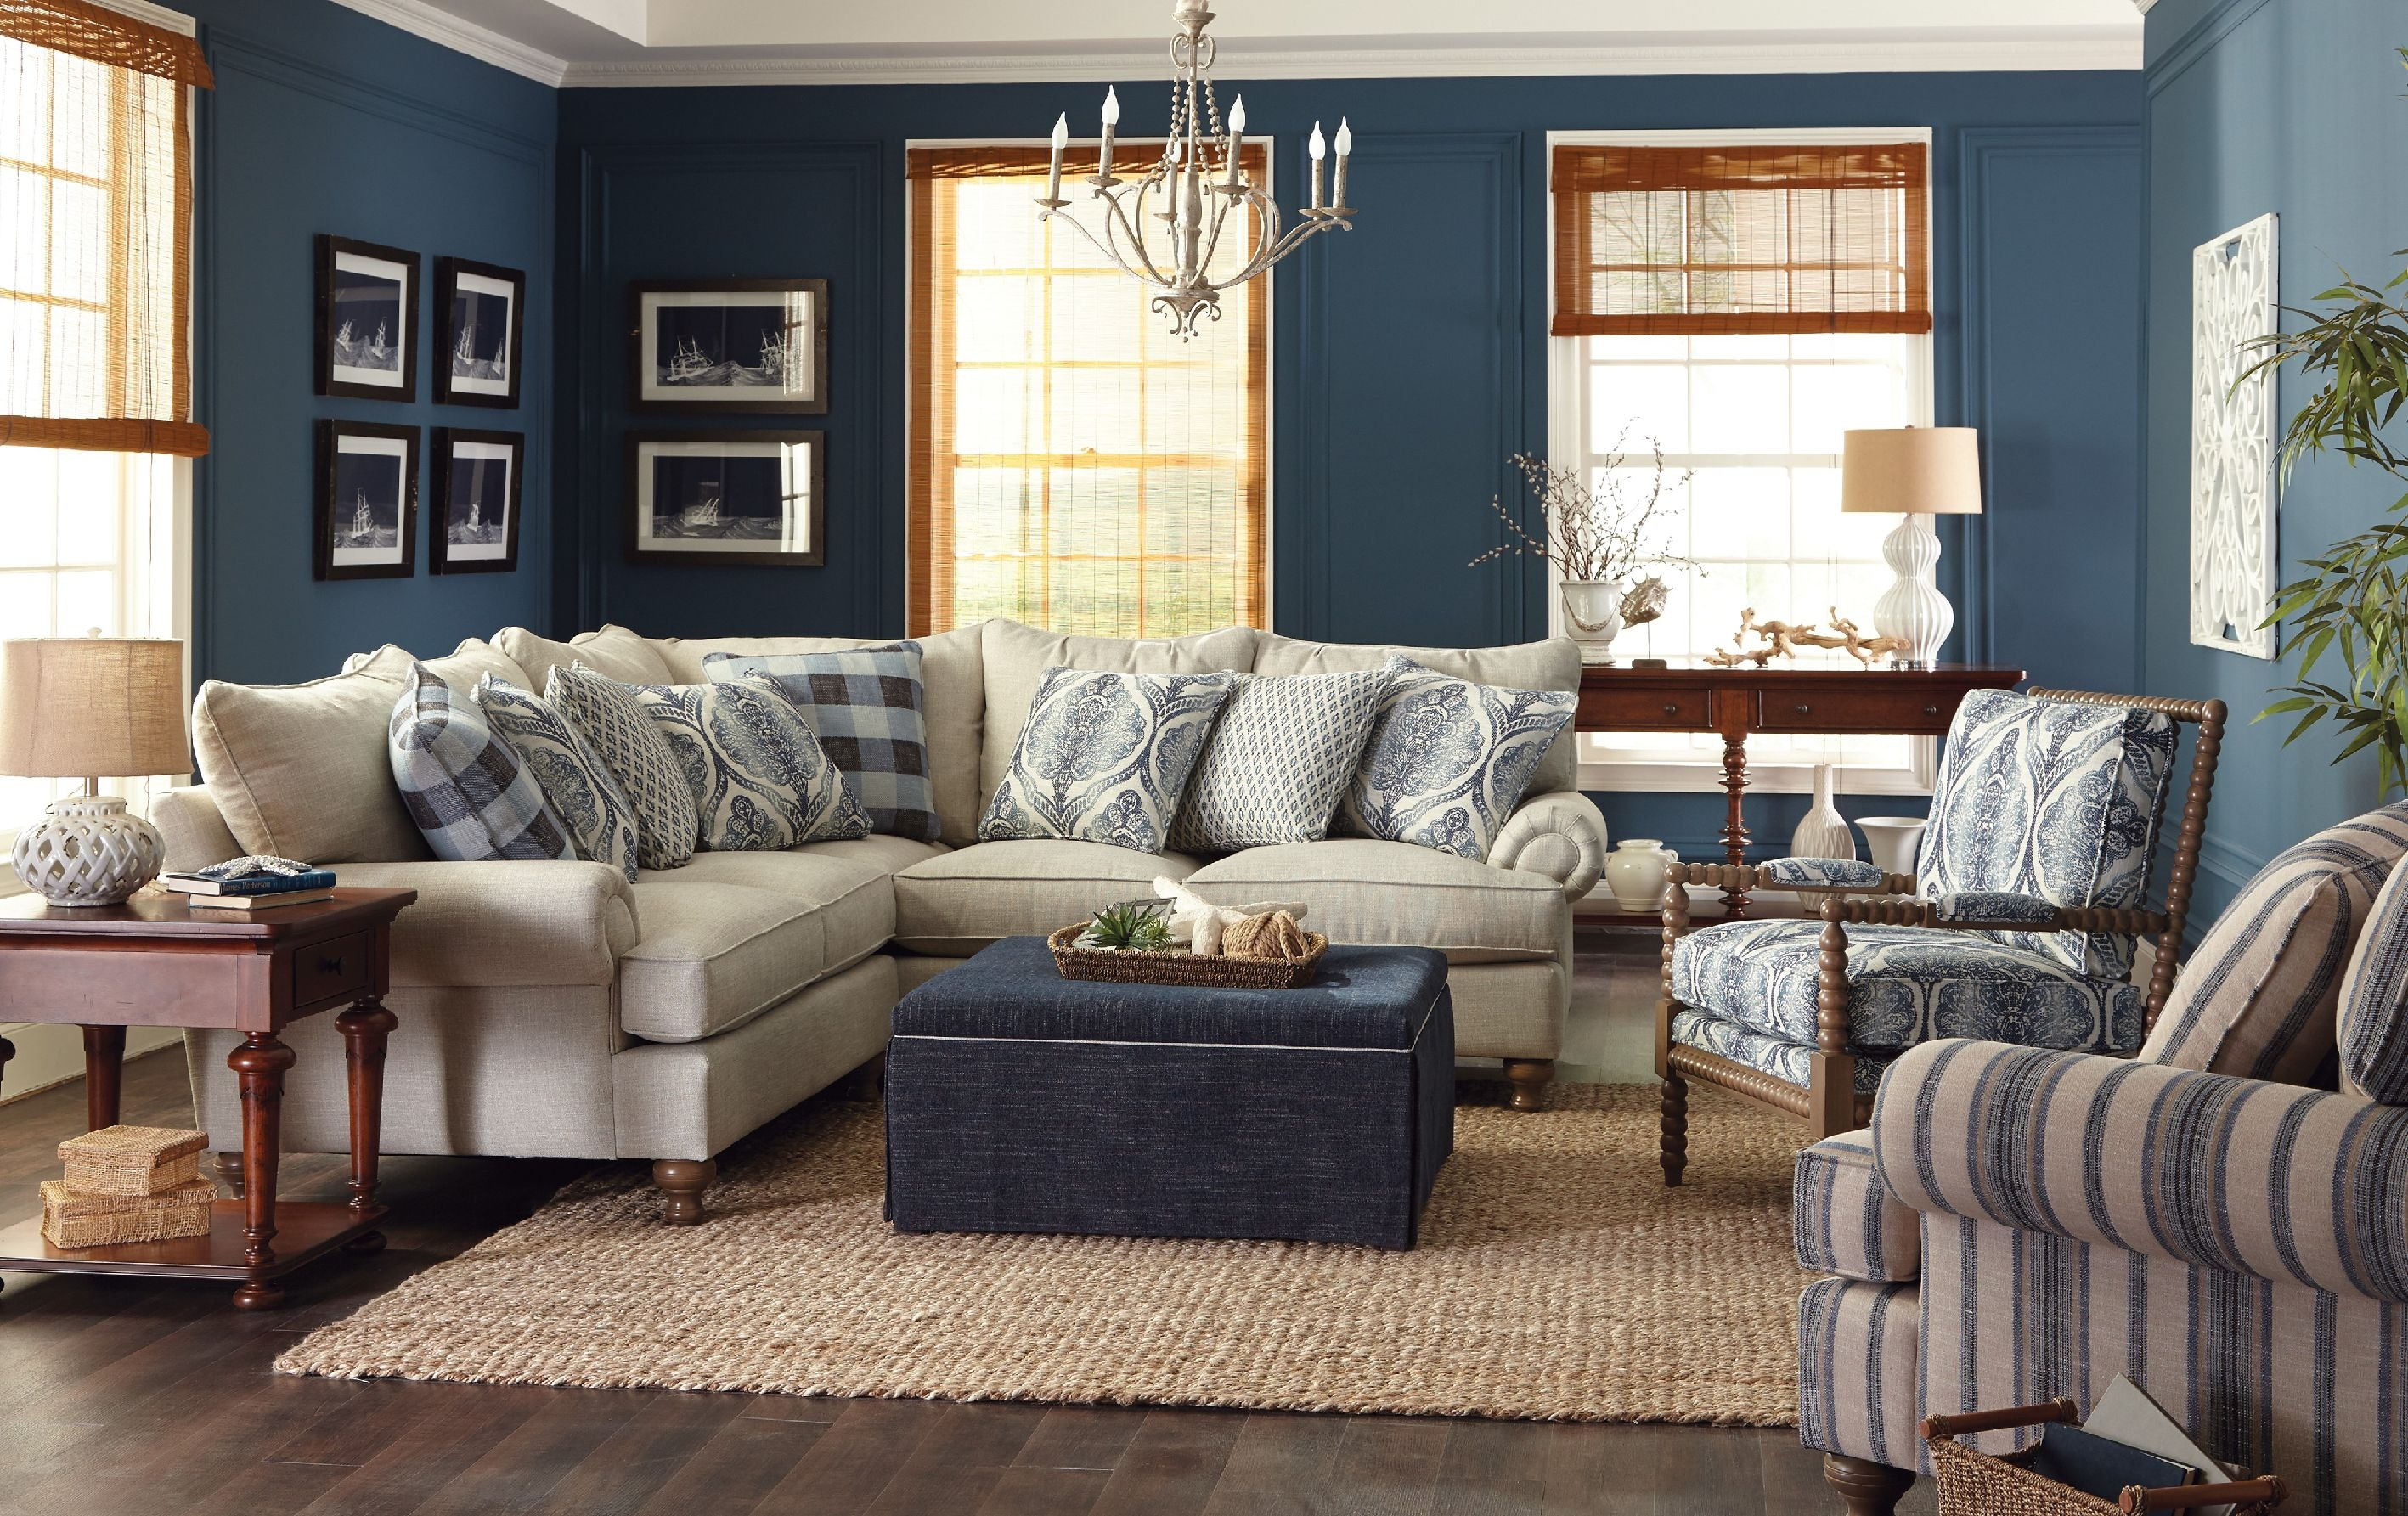 Paula Deen Living Room Sets. Indoor Home Decor. Dallas Cowboys Decor. Room Table. White Decorative Pillow. Rooms For Rent Lafayette Indiana. Decorating Ideas For Living Room Corners. Decorative P Trap. Hon Conference Room Tables